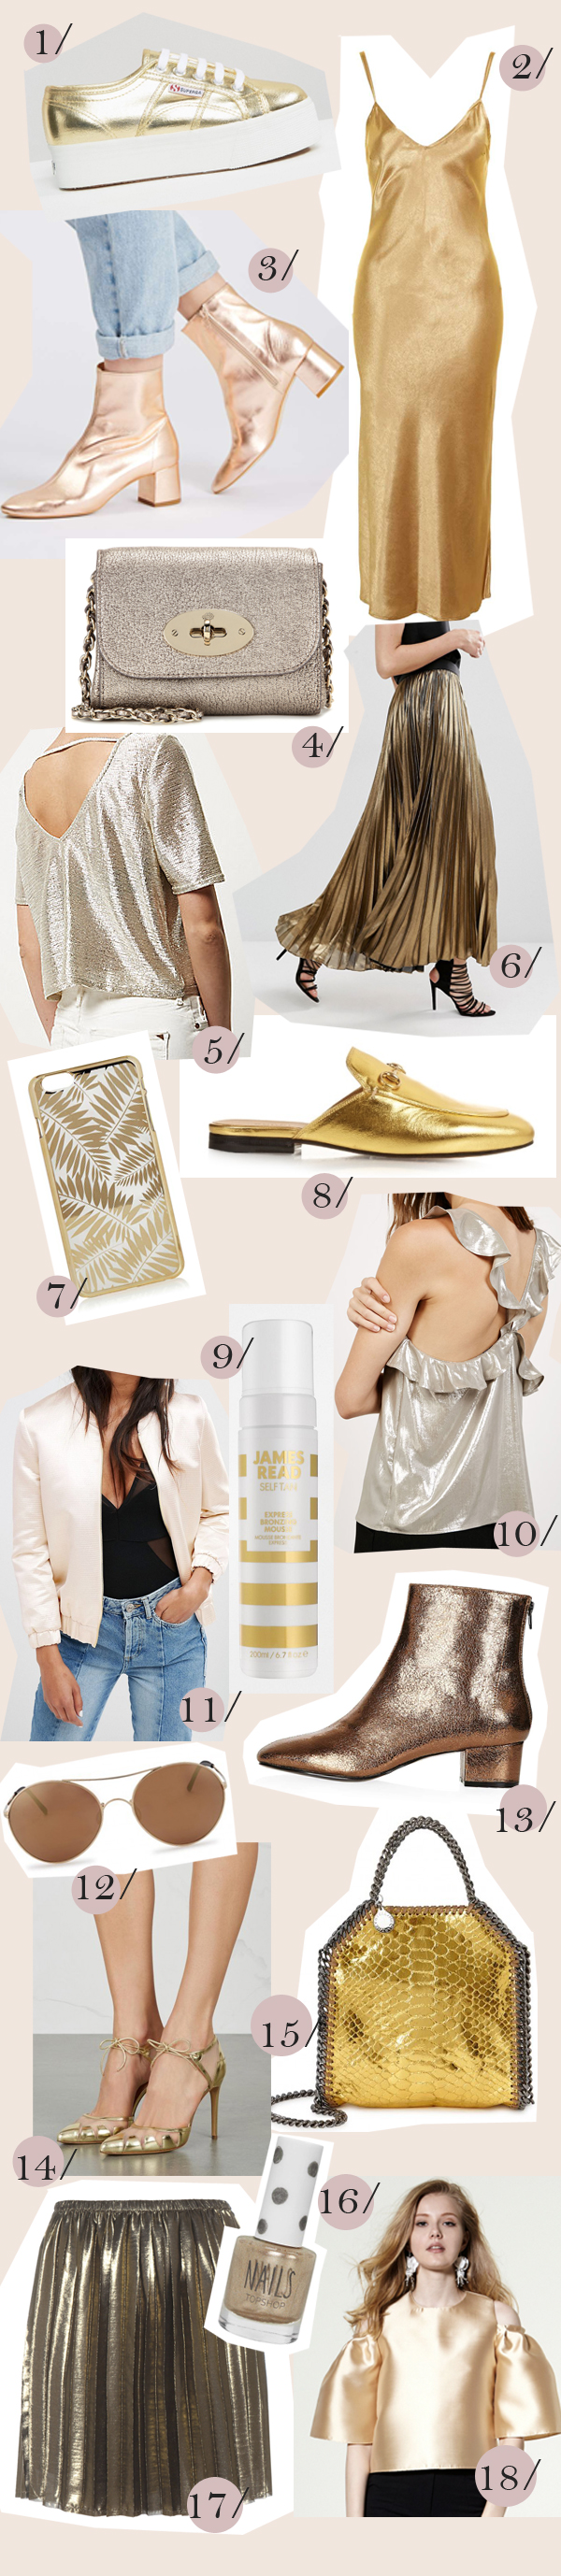 belle and bunty london style blog fashion street style gold fashion trend shopping guide